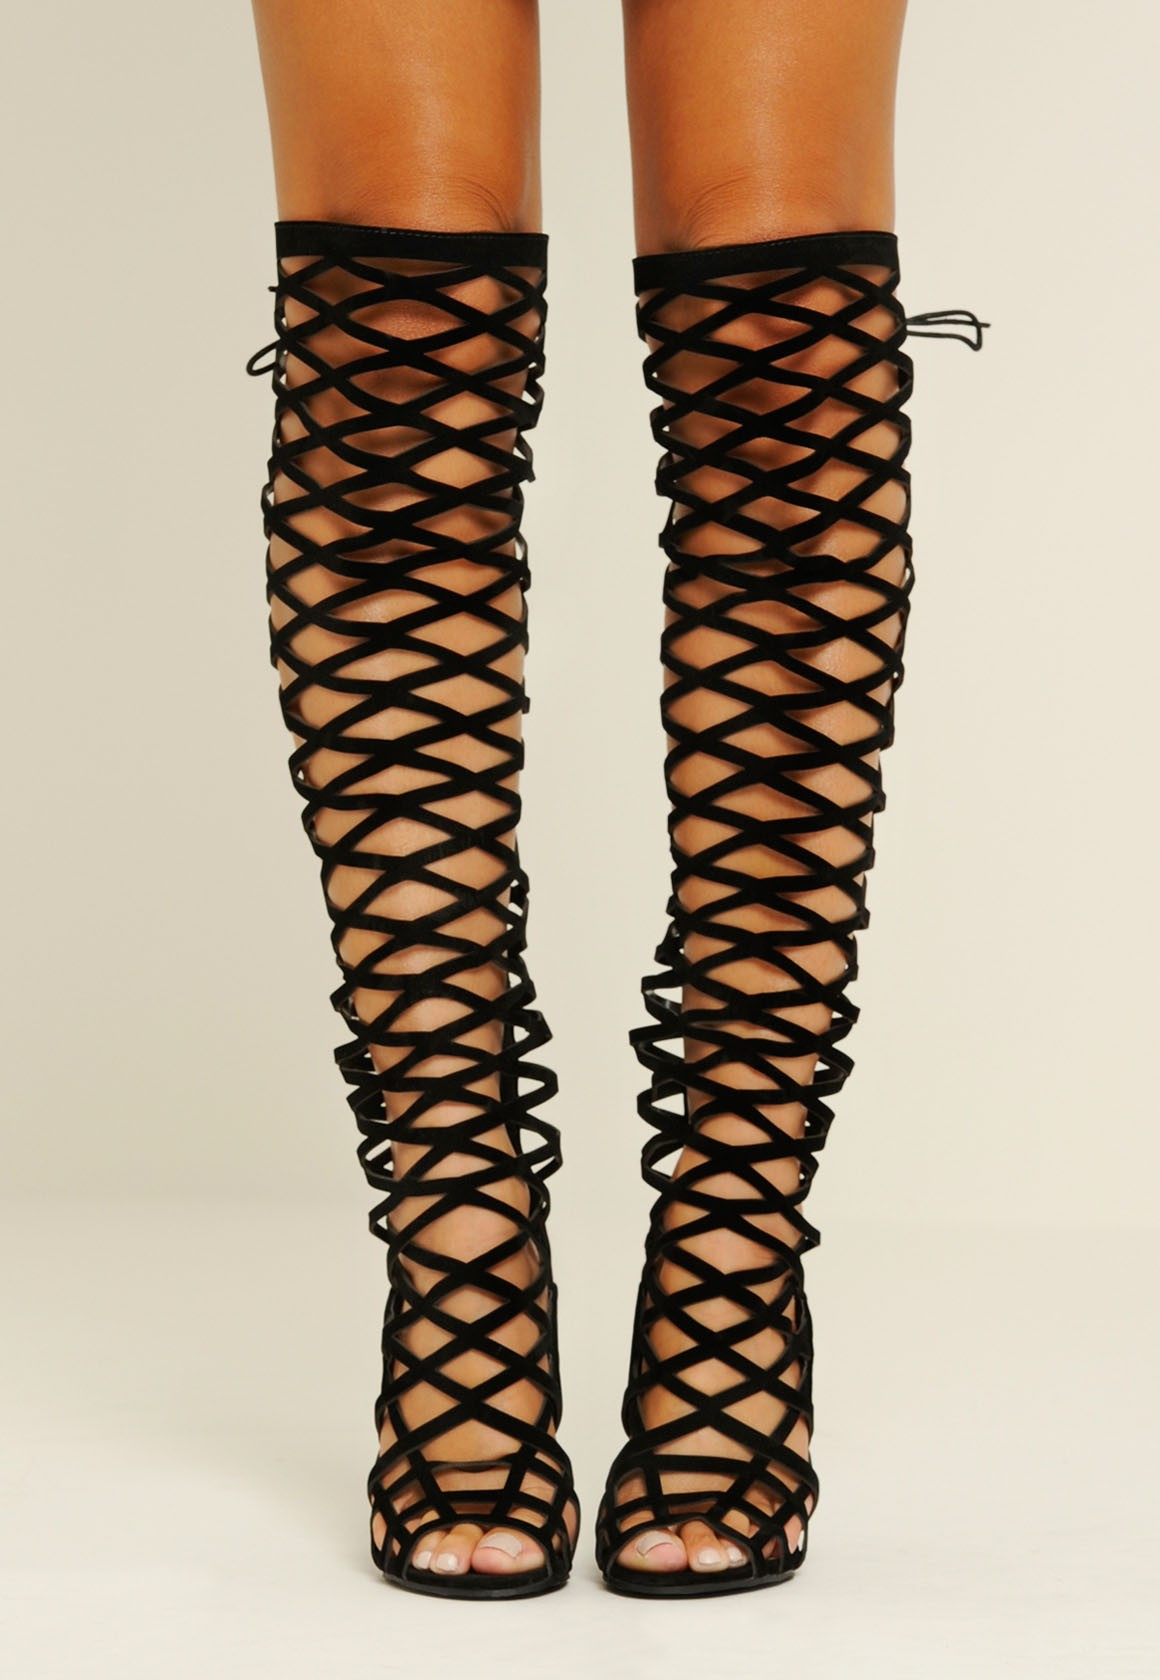 thigh high caged boots boot yc